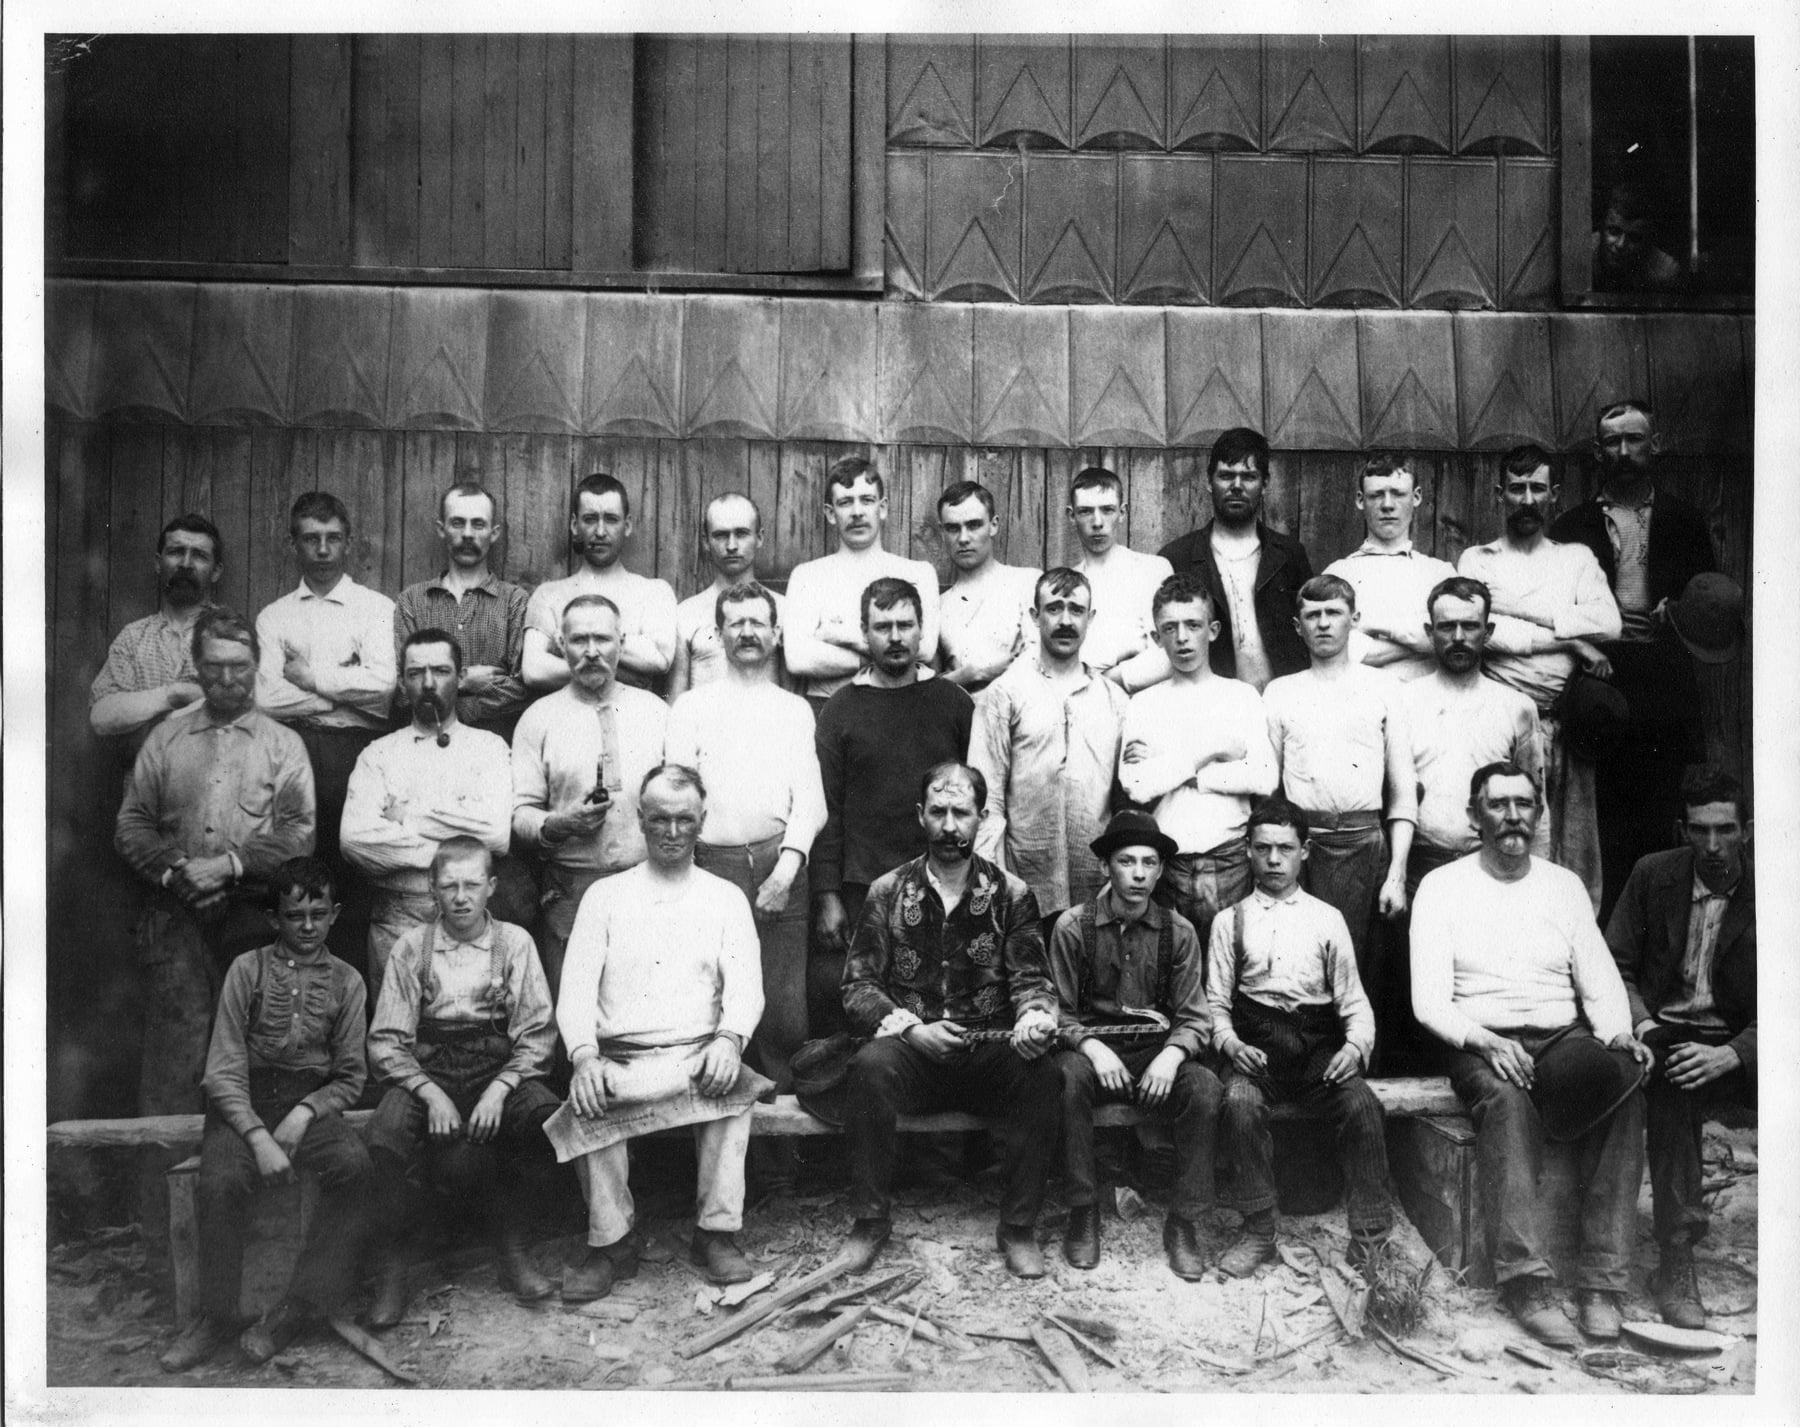 Redwood Glass Works workers in an 1880 company photo